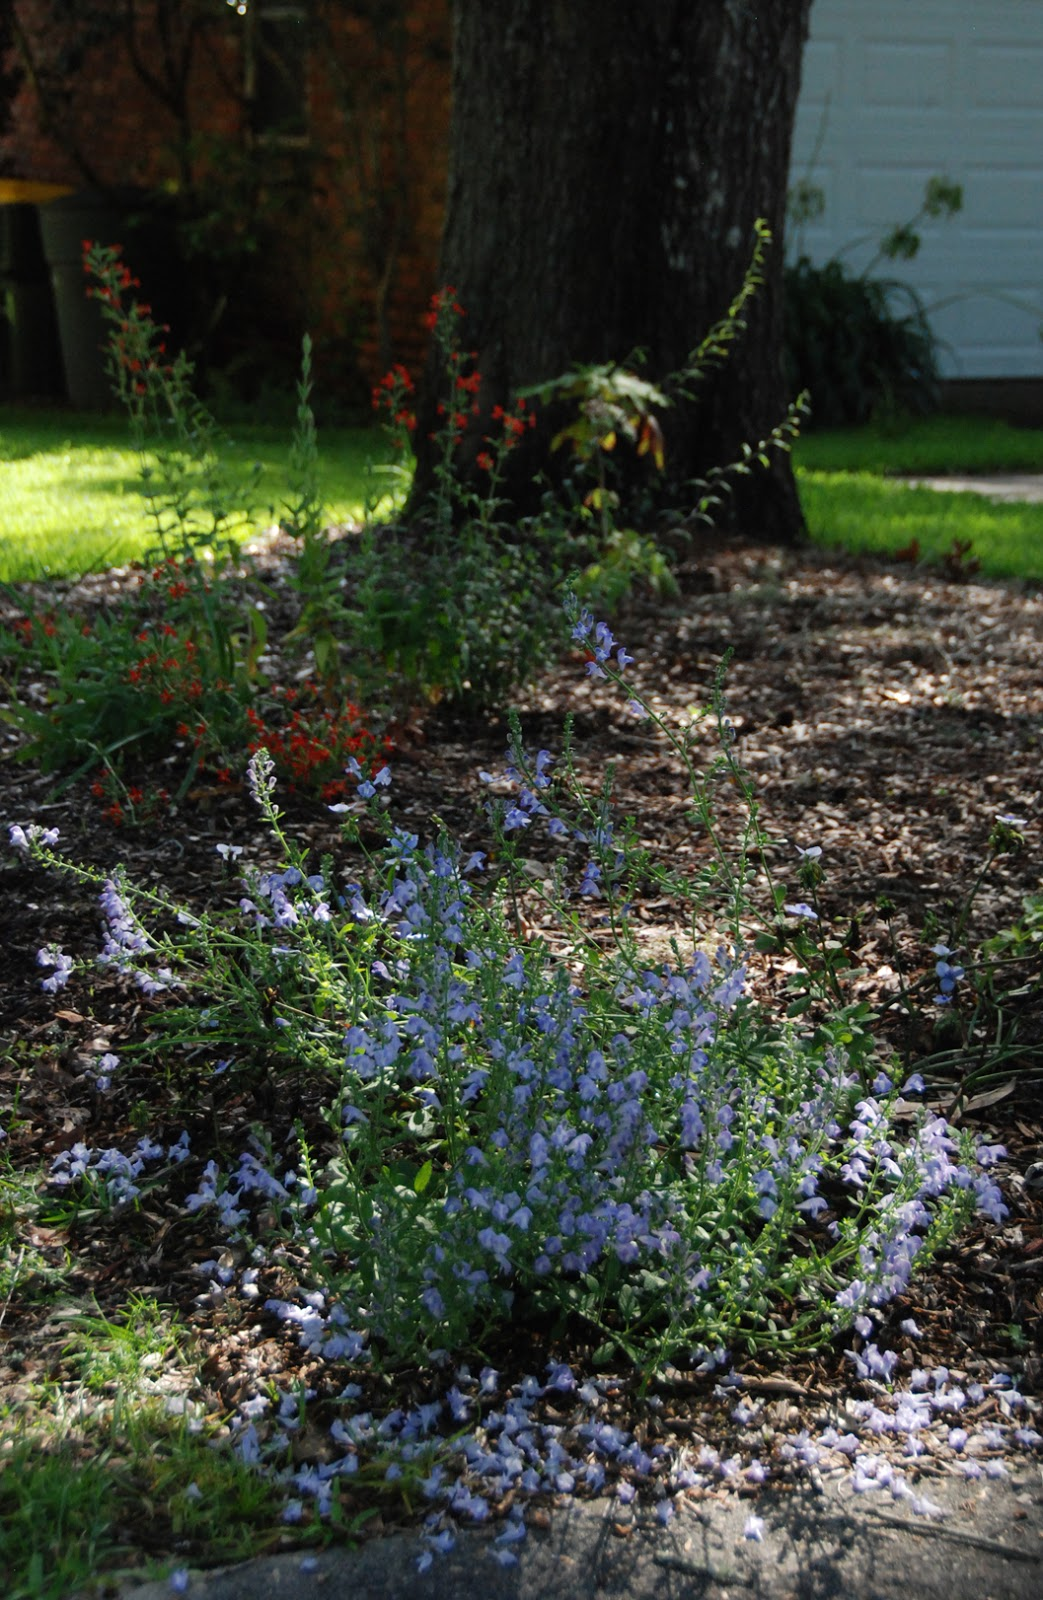 ... Create A Pollinator Garden For Sean, The Skullcaps Were In Full Bloom.  How Full Of Blossoms The Plants Are And What A Beautiful Blue Those Blooms  Are!